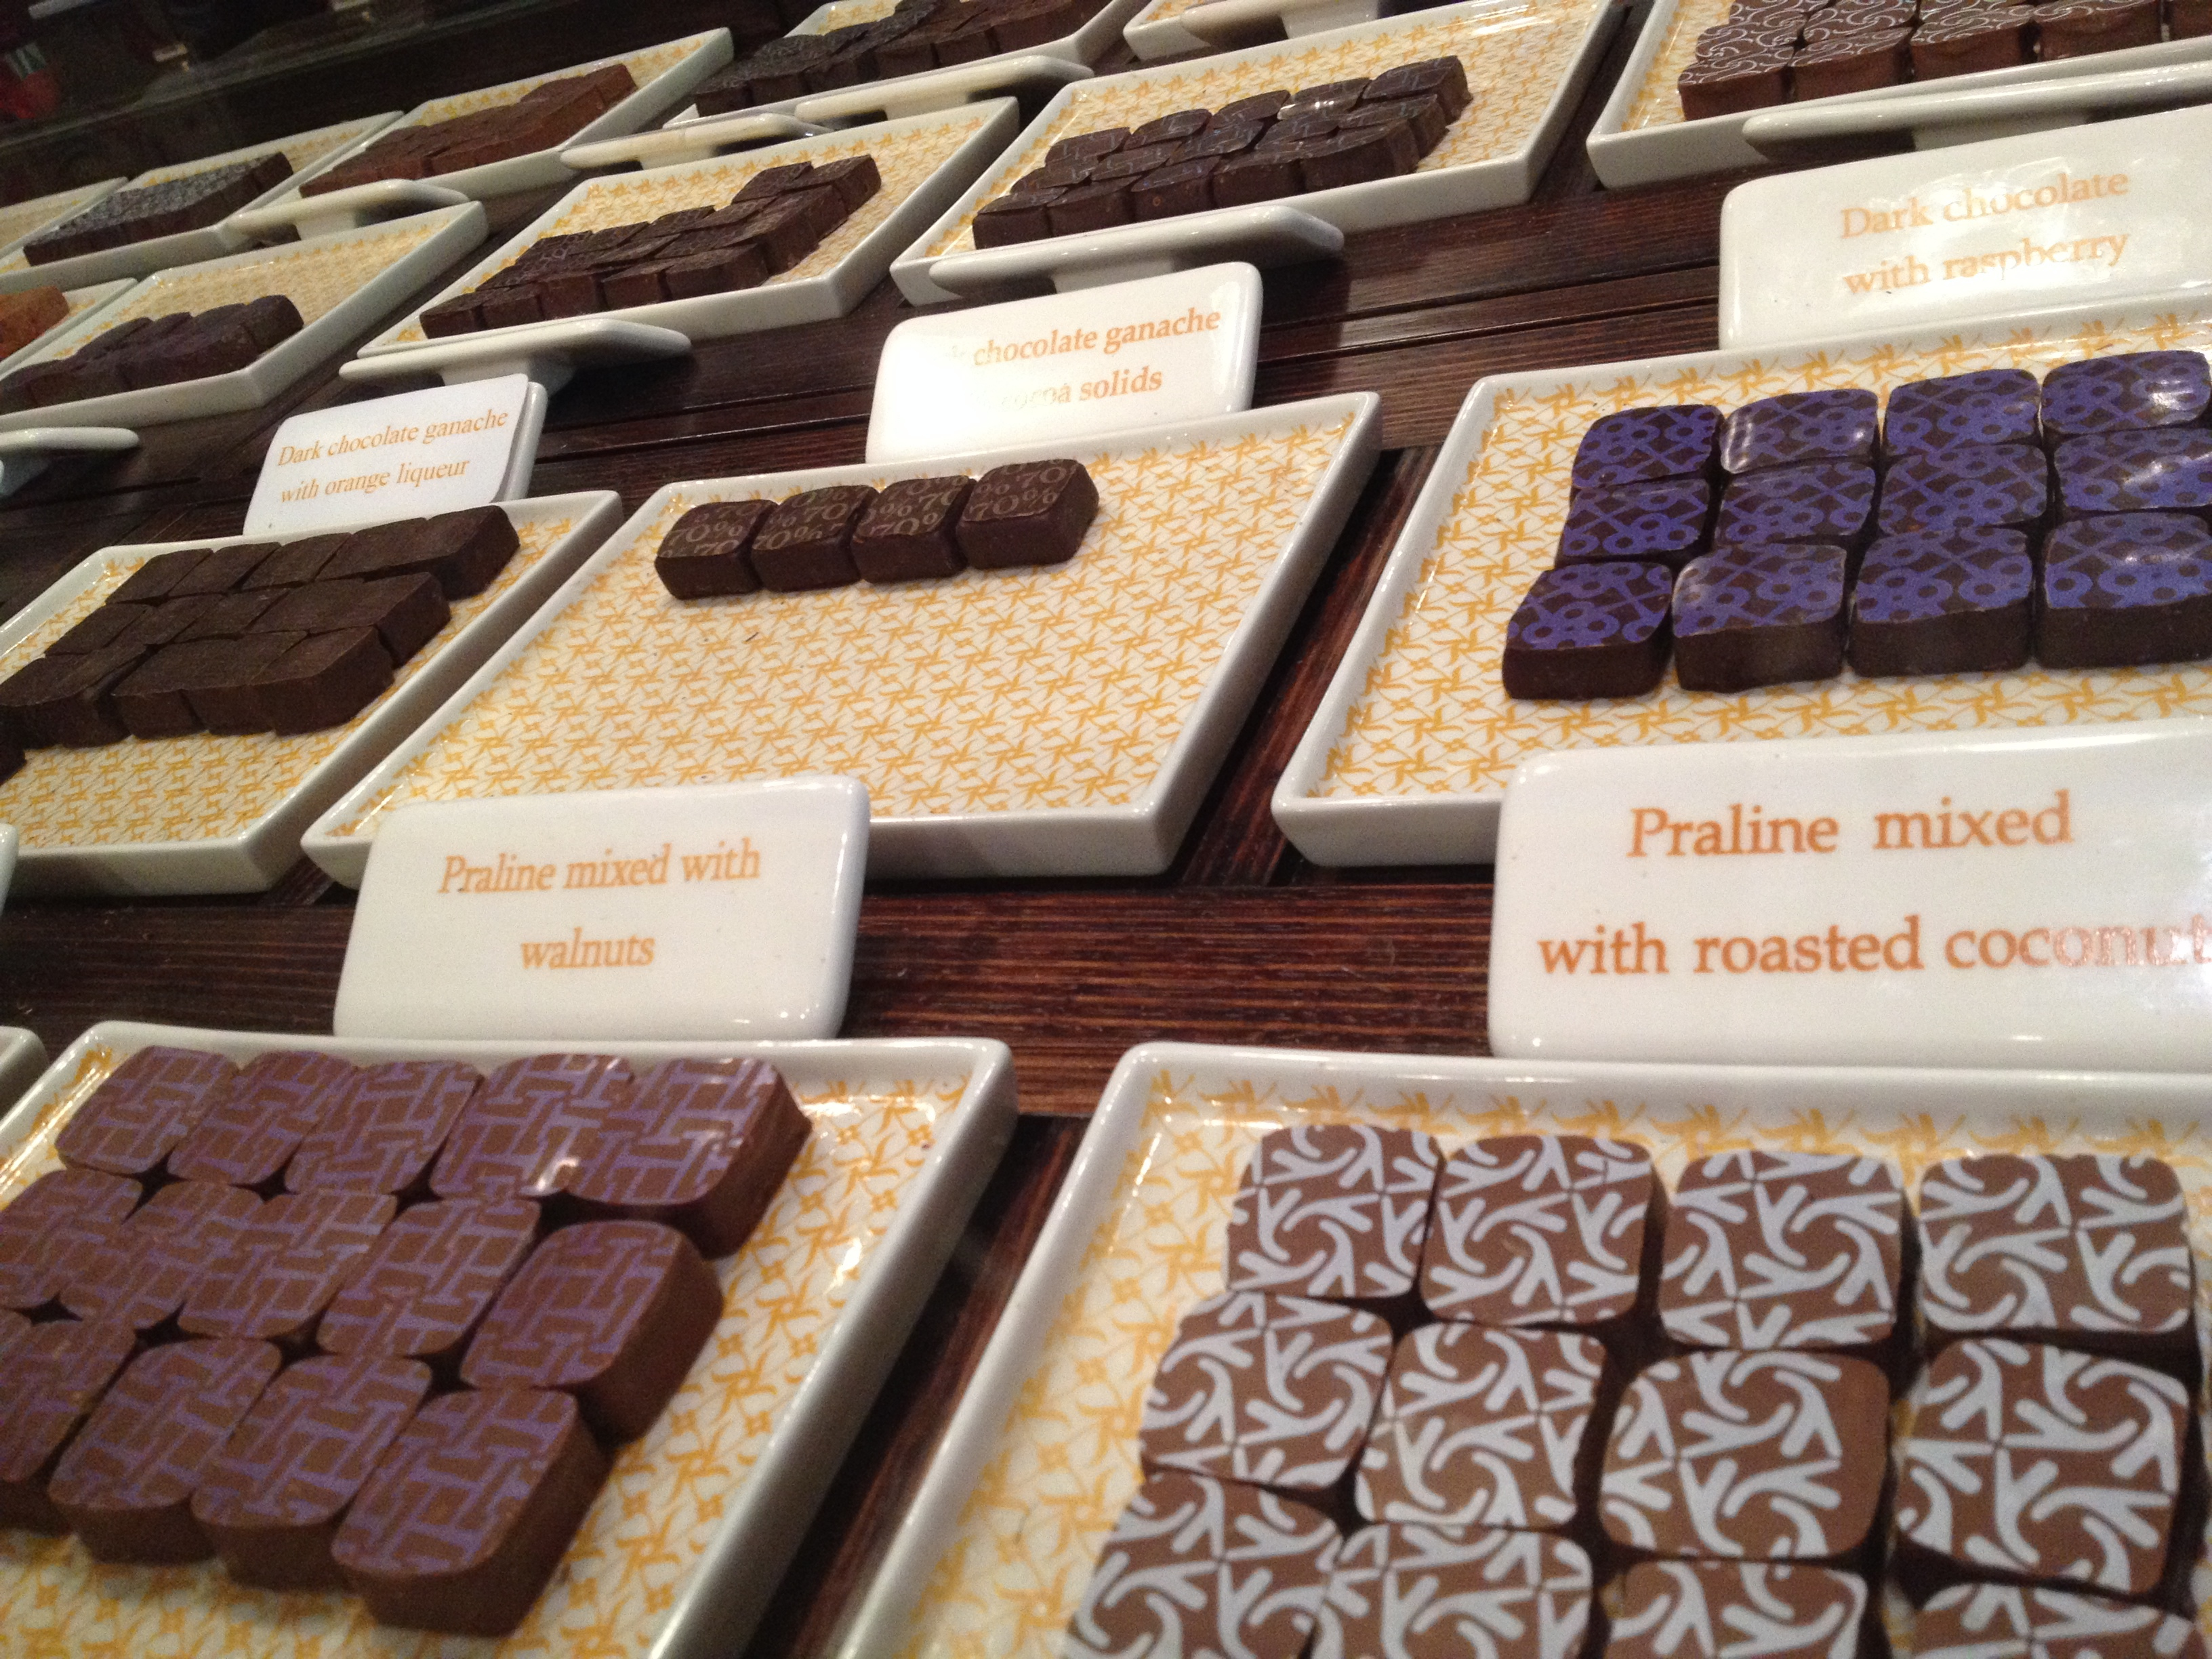 The 22 Flavours of Pralines and Ganaches @ Max Brenner